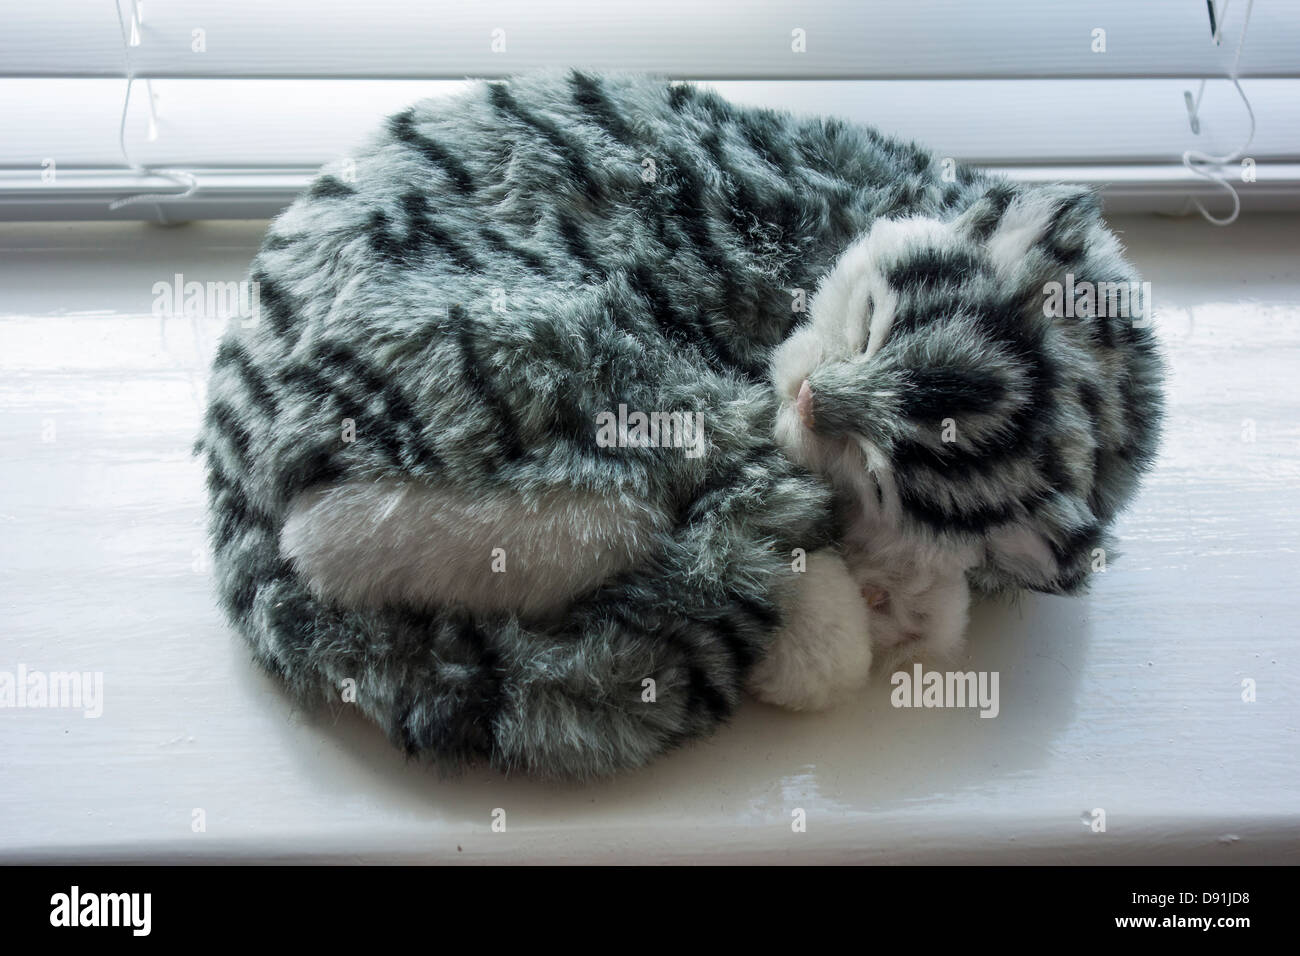 Realistic Toy Kitten Asleep in on Window Sill - Stock Image